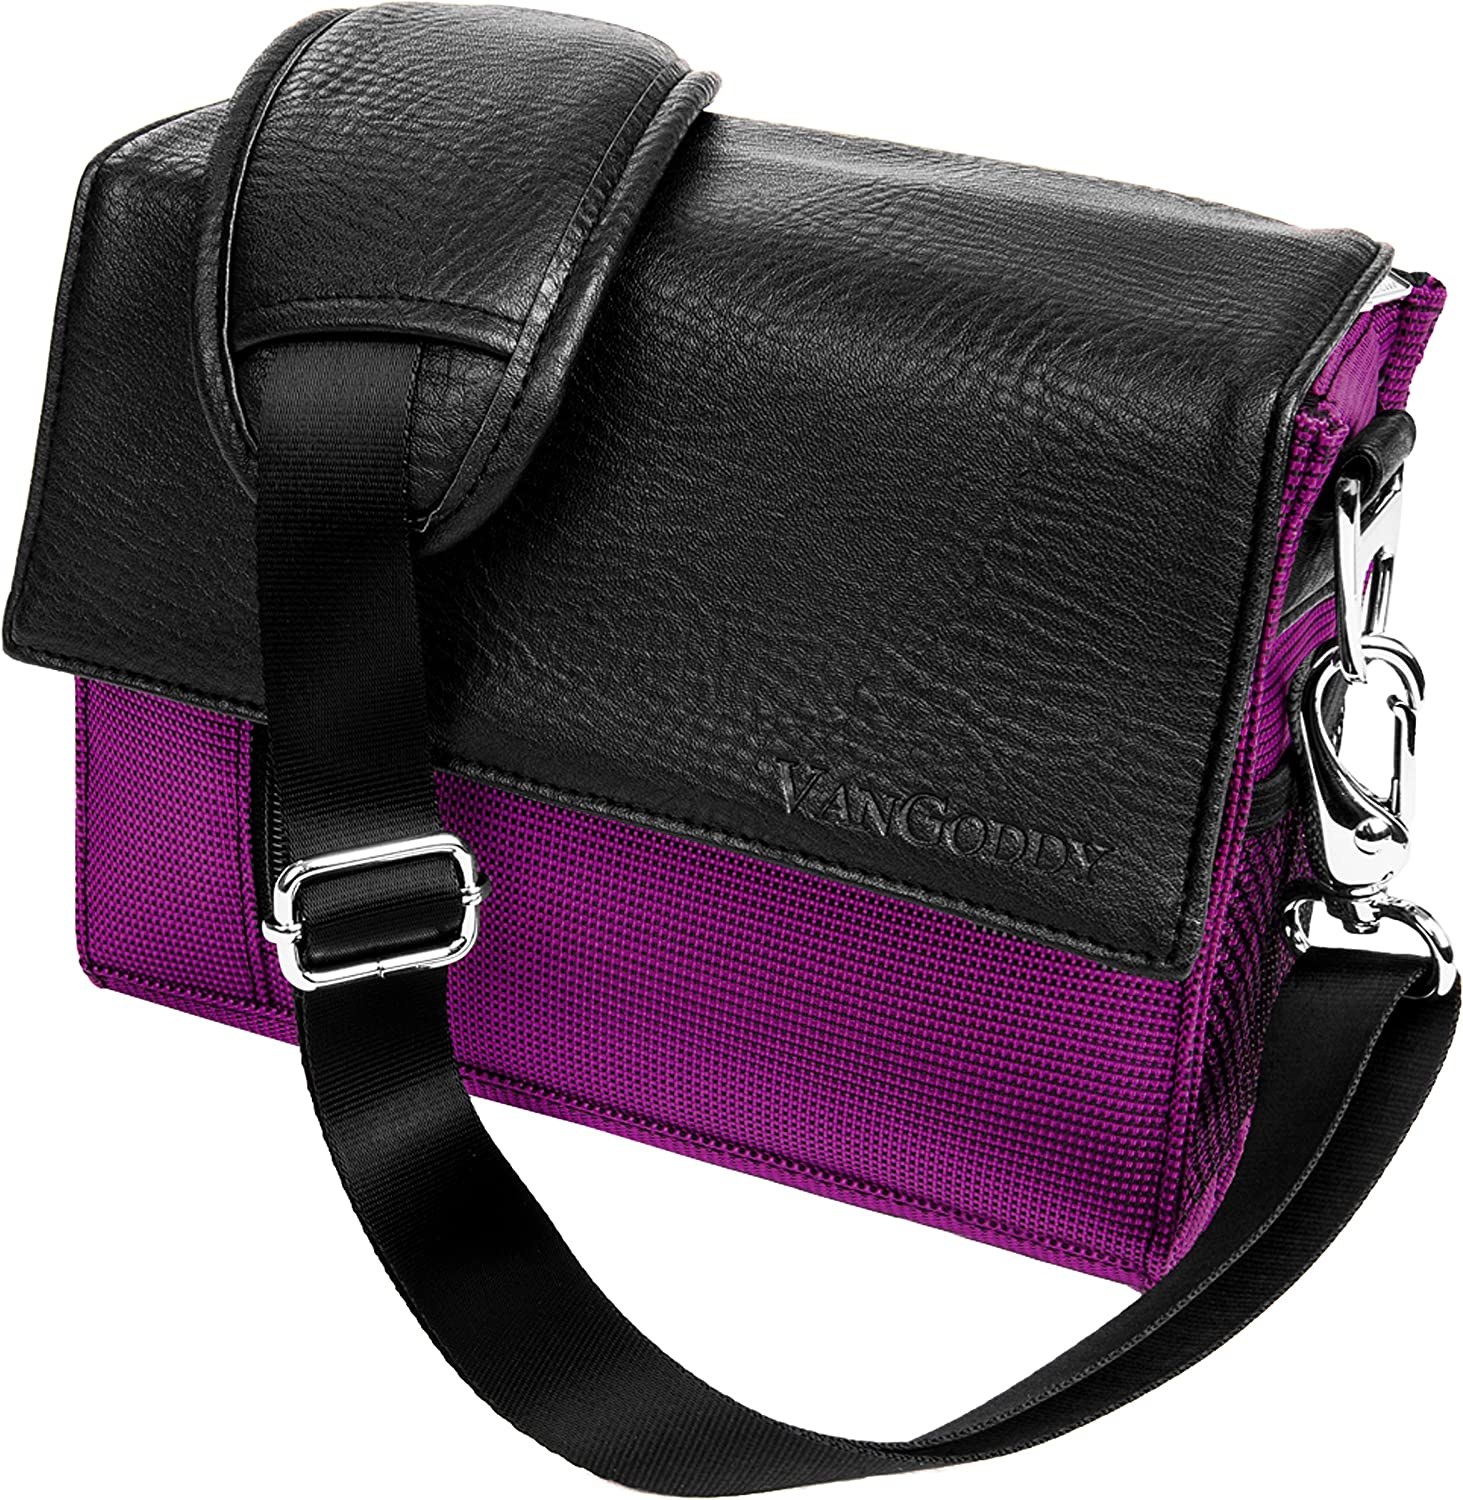 Purple Crossbody Shoulder Camera Carrying Case Bag for Nikon Z50 Z7 Z6, D DL CoolPix Series